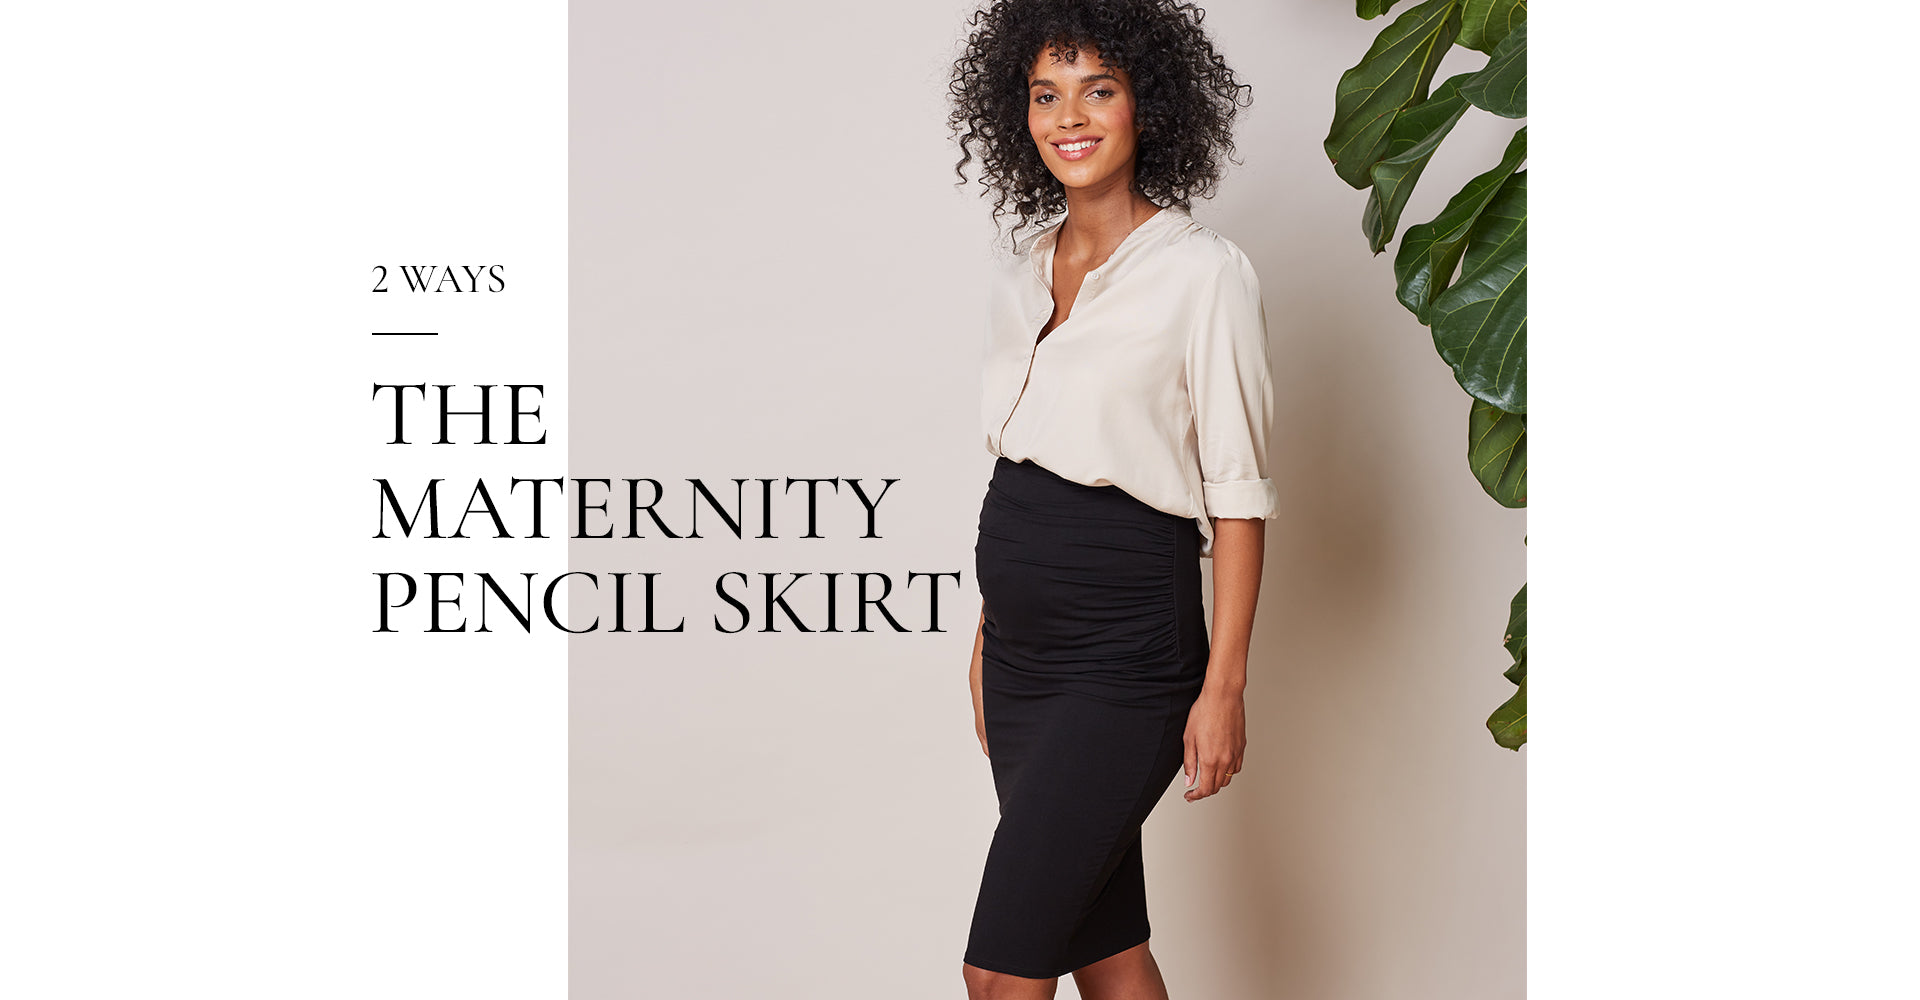 The Maternity Pencil Skirt